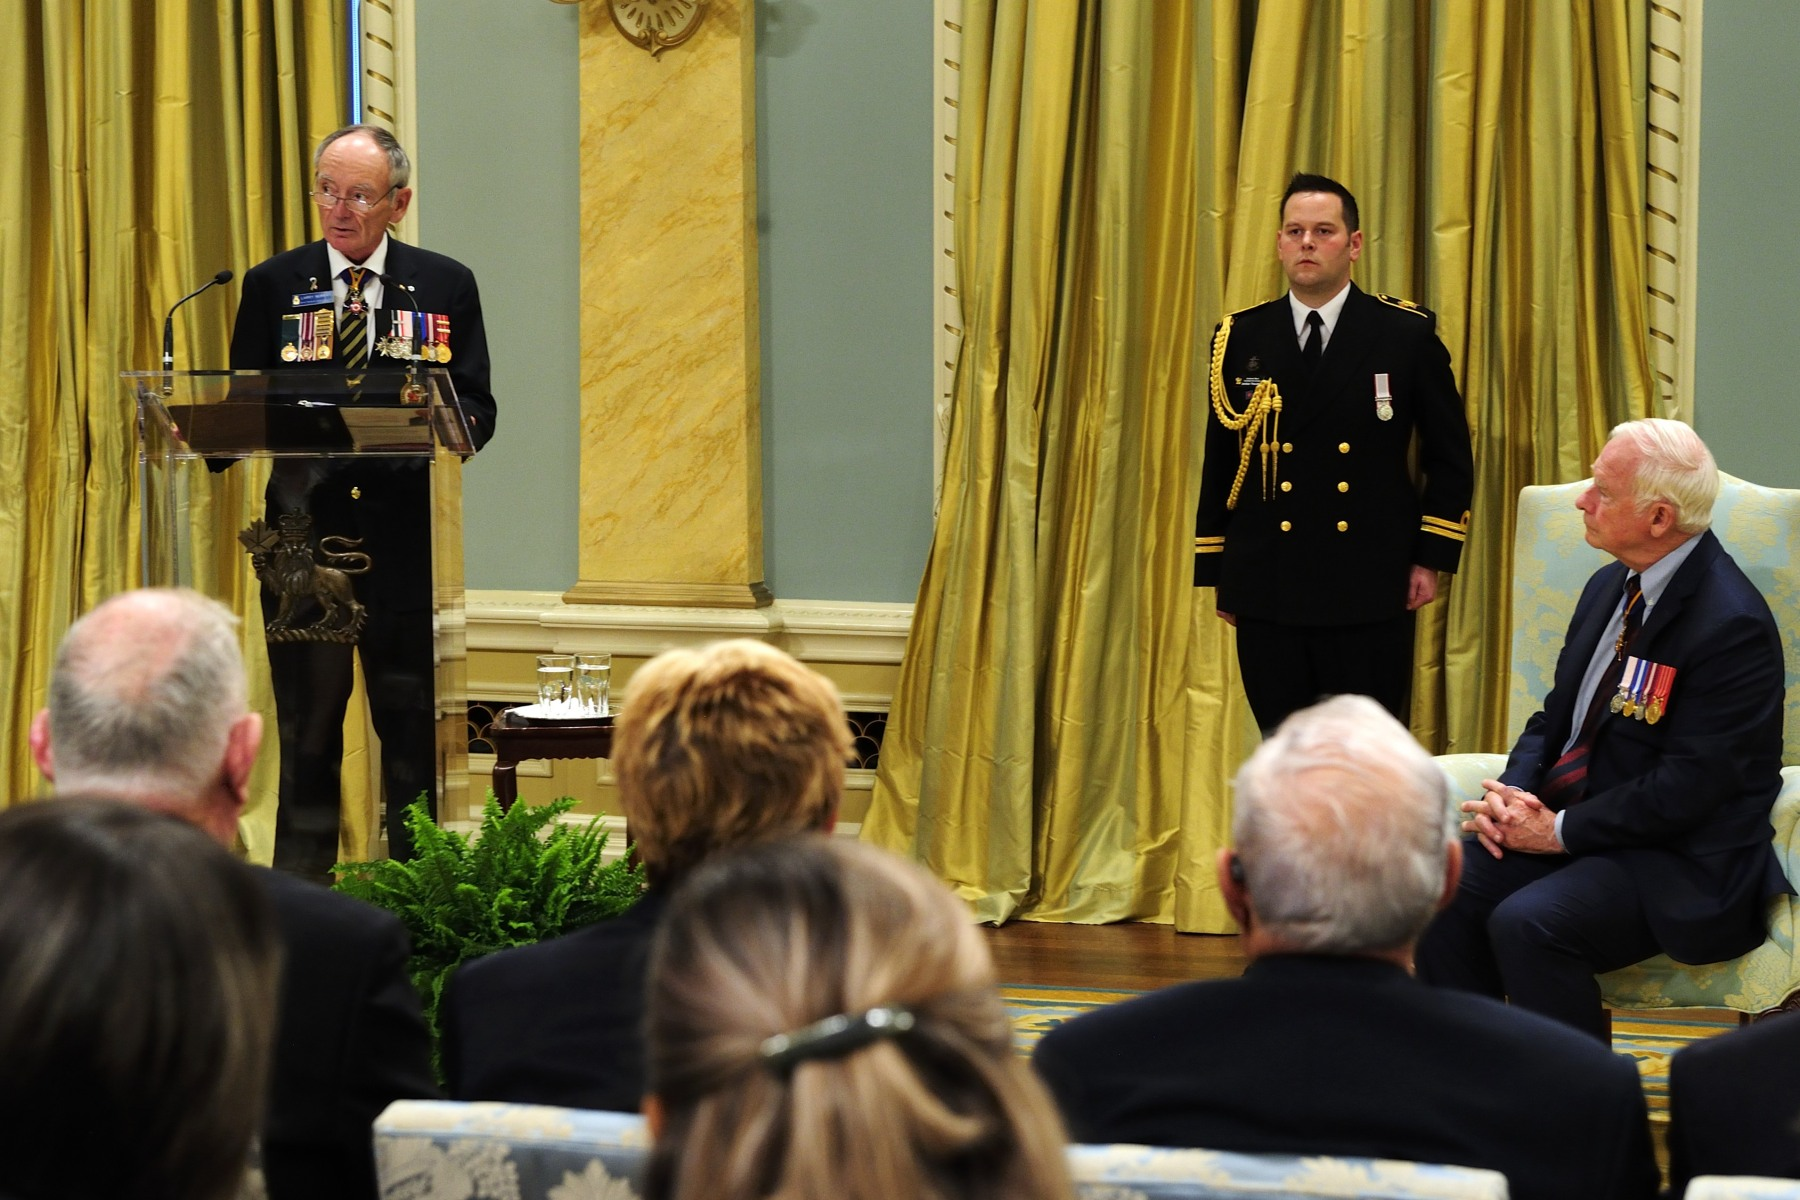 Vice-Admiral (Ret'd) Larry Murray, The Royal Canadian Legion's Grand President also delivered an address on this occasion.